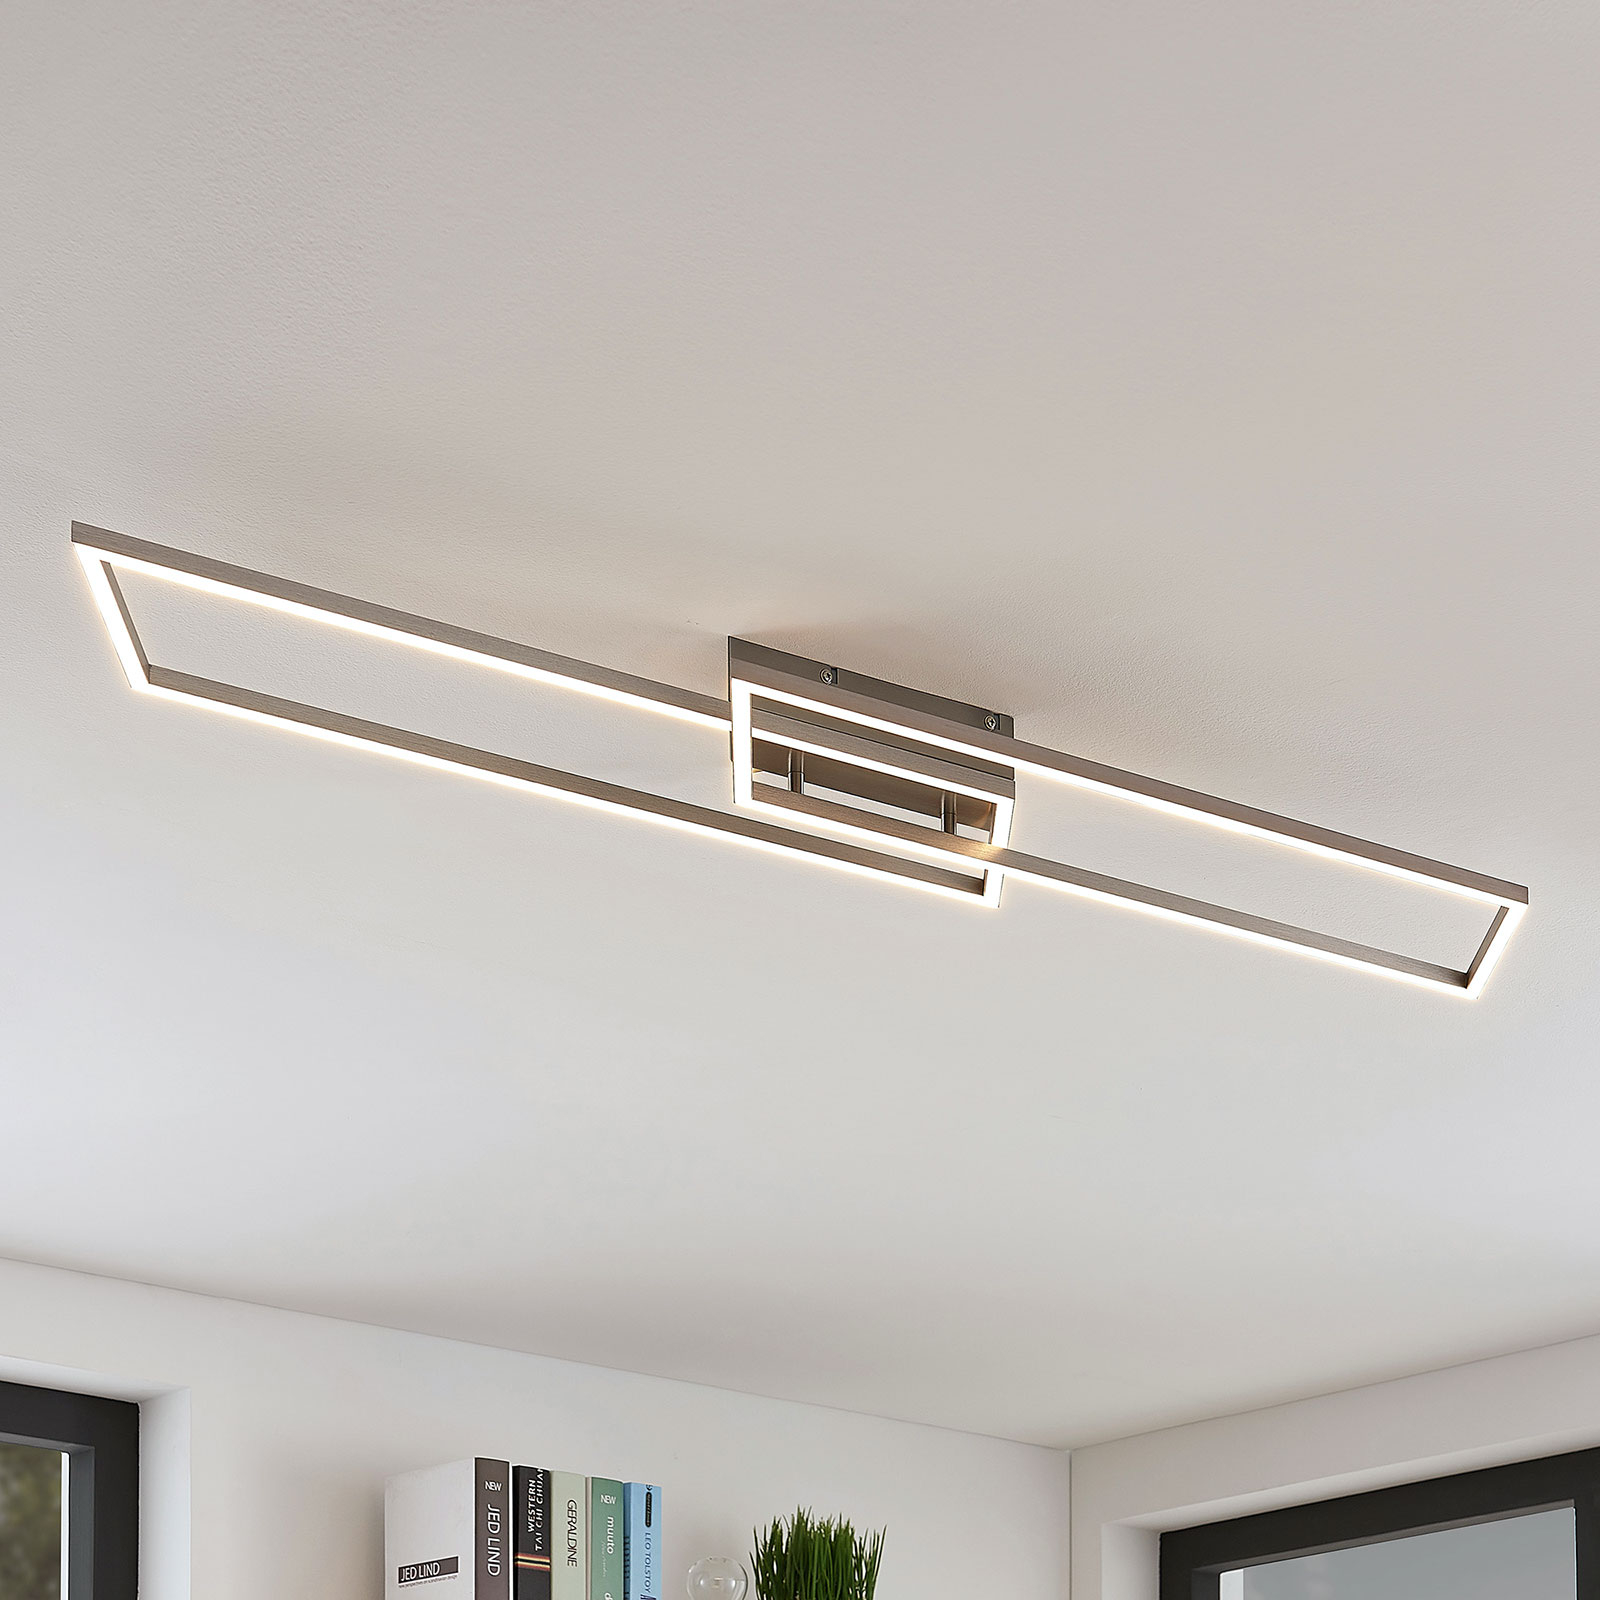 Plafoniera LED Quadra lineare, dimmerabile